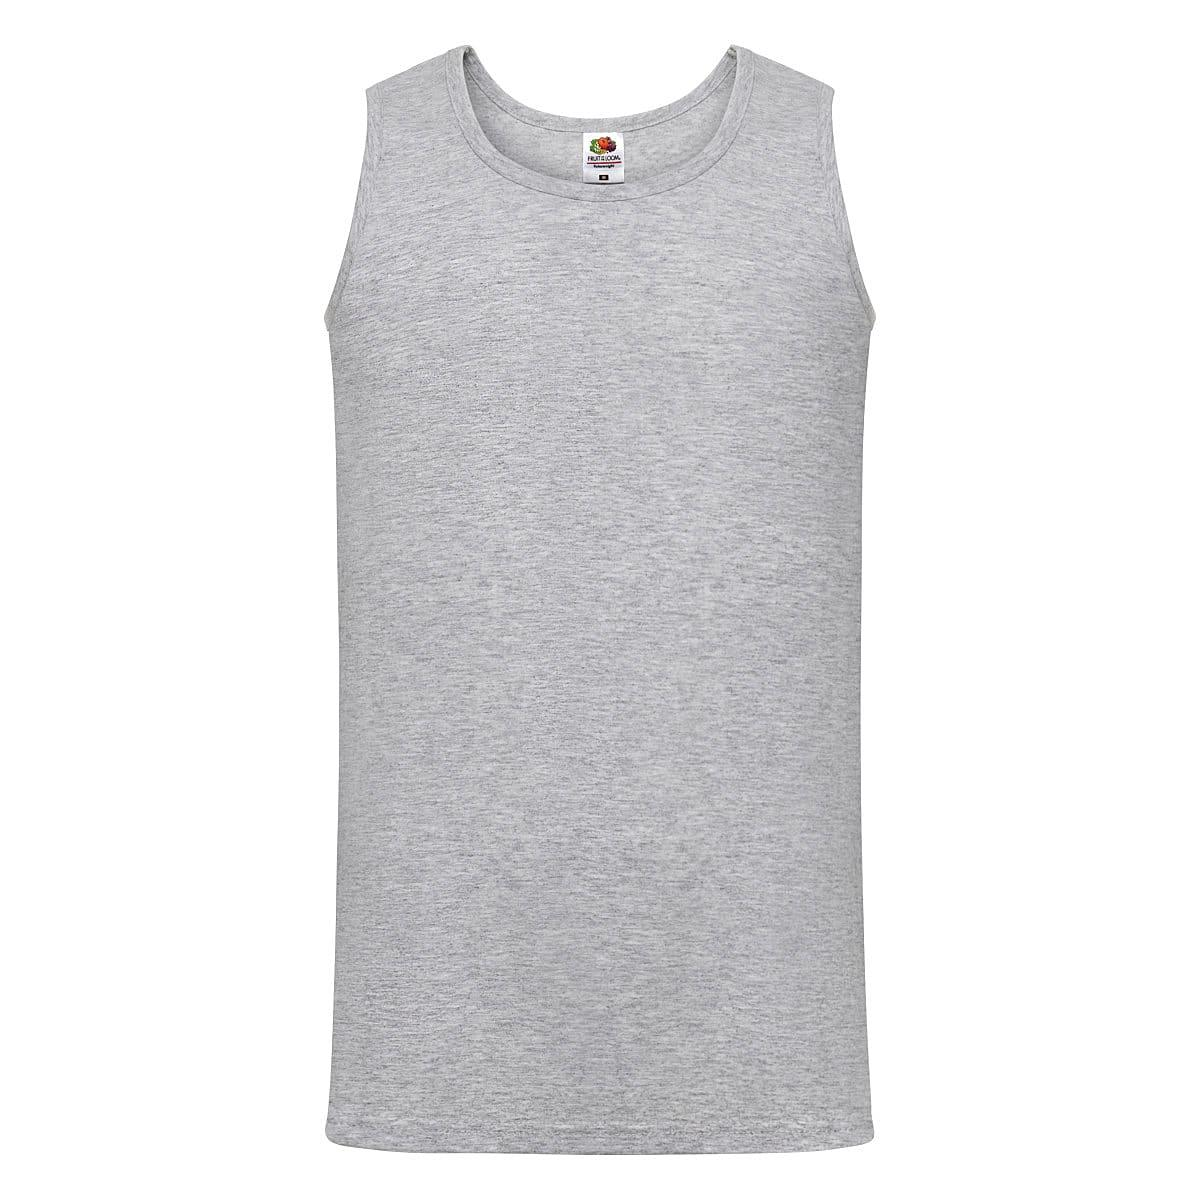 Fruit Of The Loom Athletic Vest in Heather Grey (Product Code: 61098)